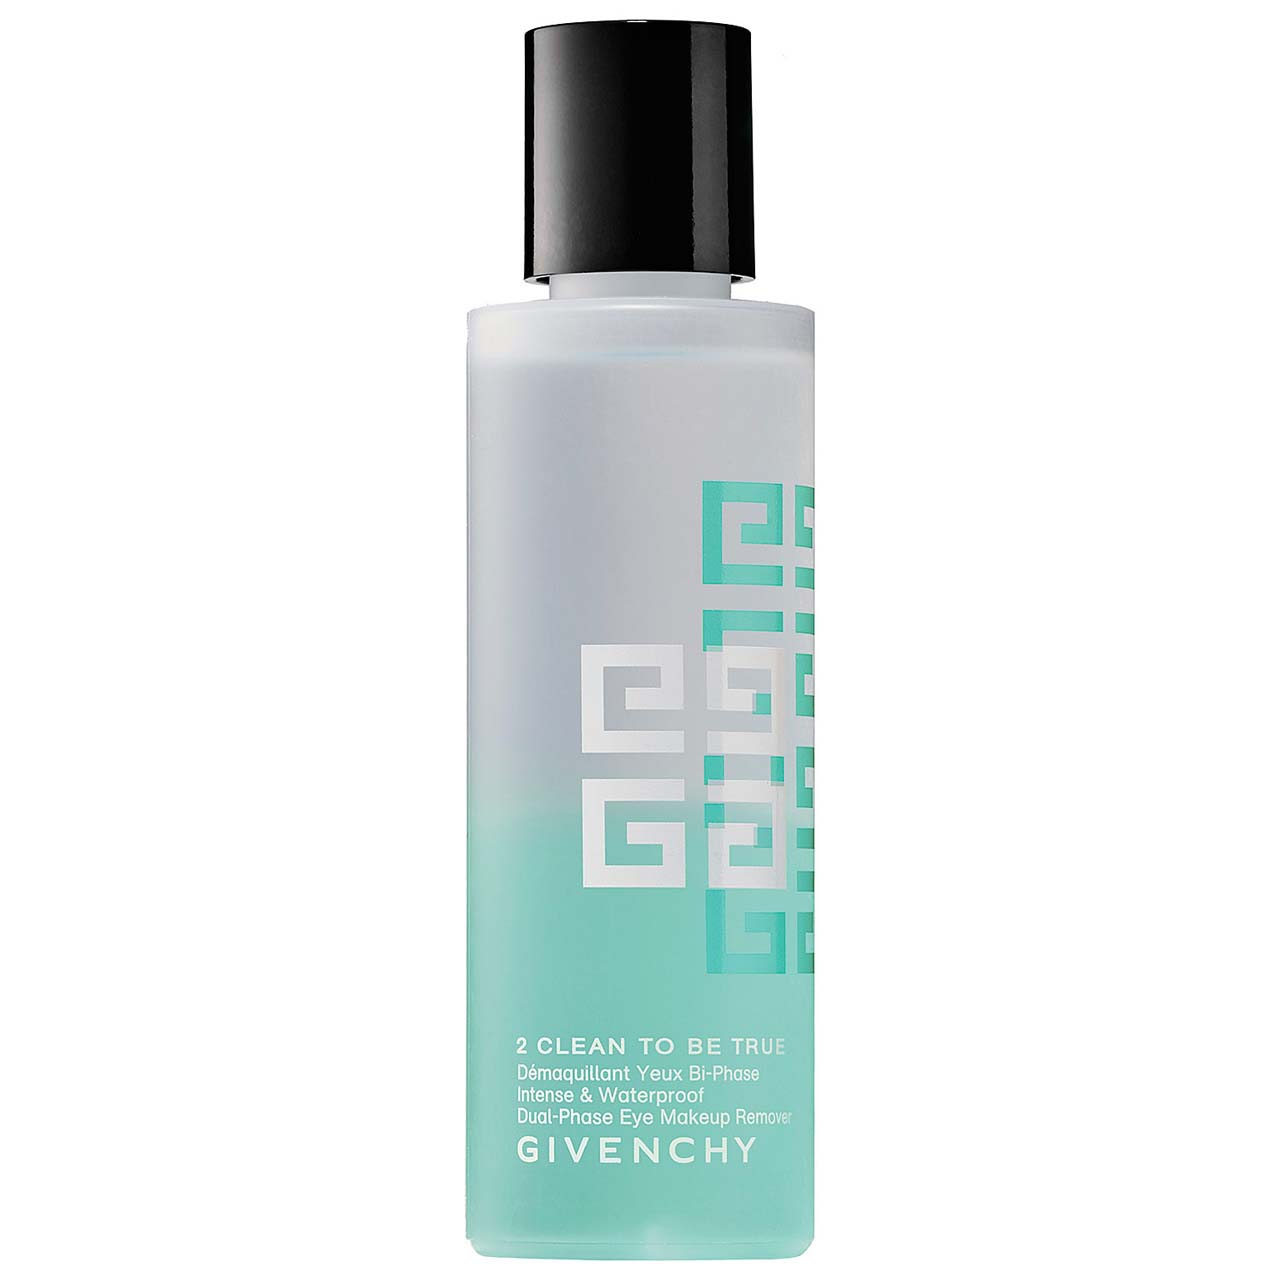 givenchy-2-clean-to-be-true-eye-makeup-remover